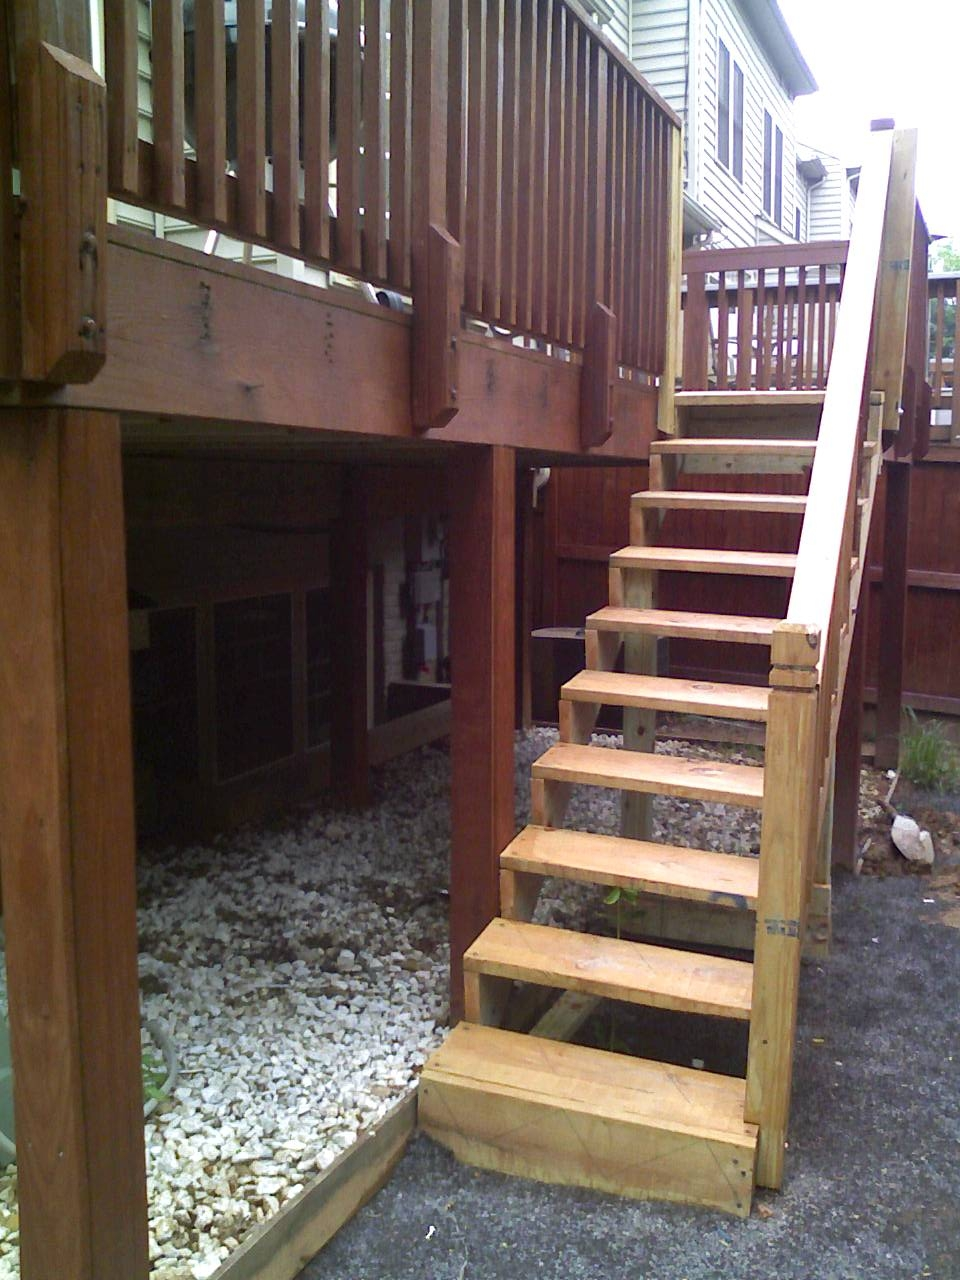 Deck Stair Treads Page 2 General Discussion Contractor Talk | Outdoor Deck Stair Treads | Composite Deck | Stringer | Pressure Treated Wood | Stair Stringer | Metal